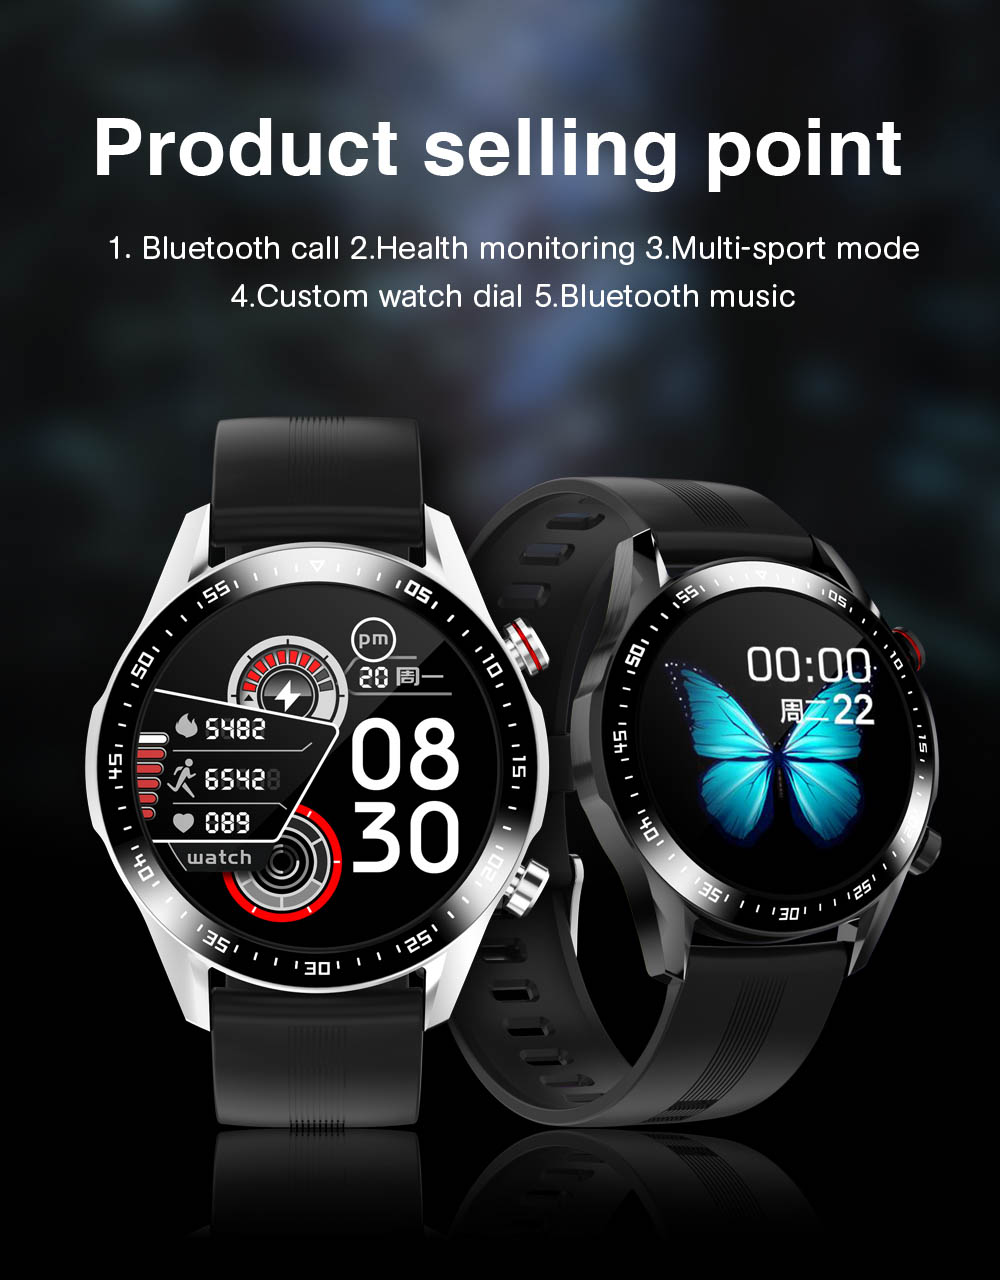 H936fb68ecc78453c8b12e7a7f10ca6b9f E1-2 Smart Watch Men Bluetooth Call Custom Dial Full Touch Screen Waterproof Smartwatch For Android IOS Sports Fitness Tracker